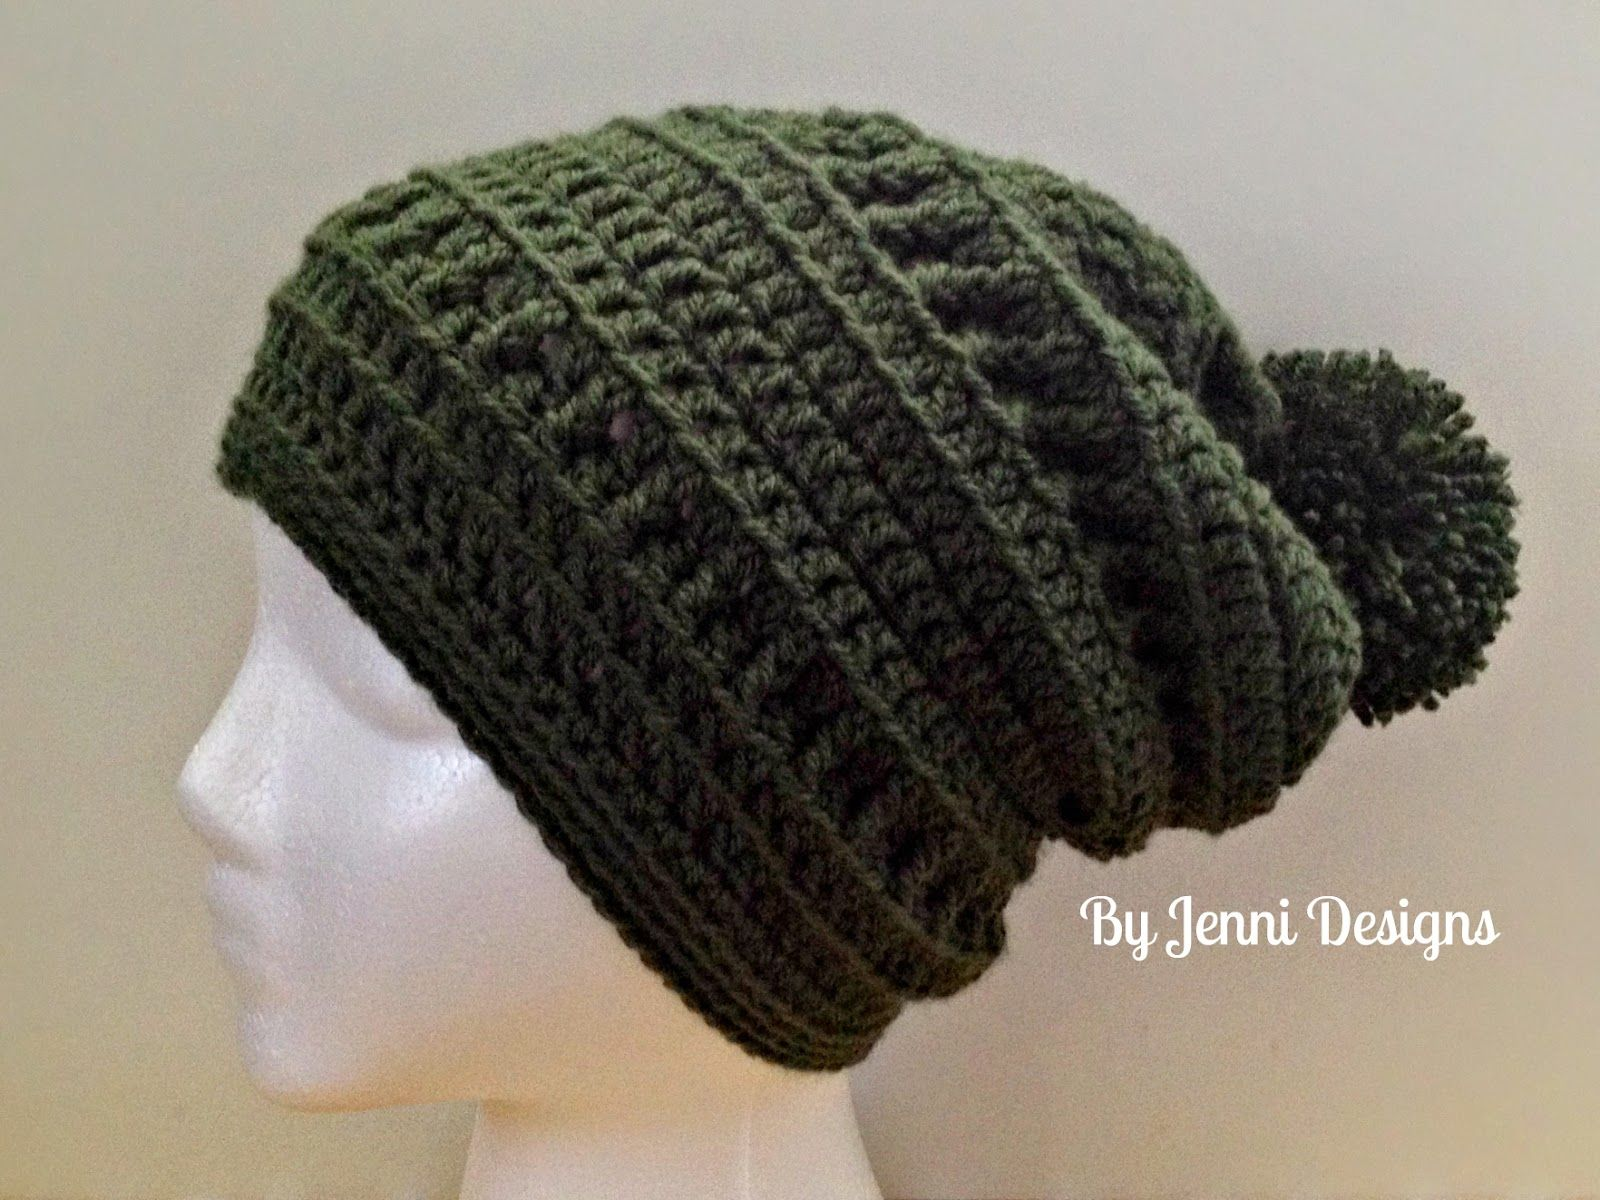 59af639c987 By Jenni Designs  Slouchy Textured Beanie (womens size) - Free crochet  pattern.